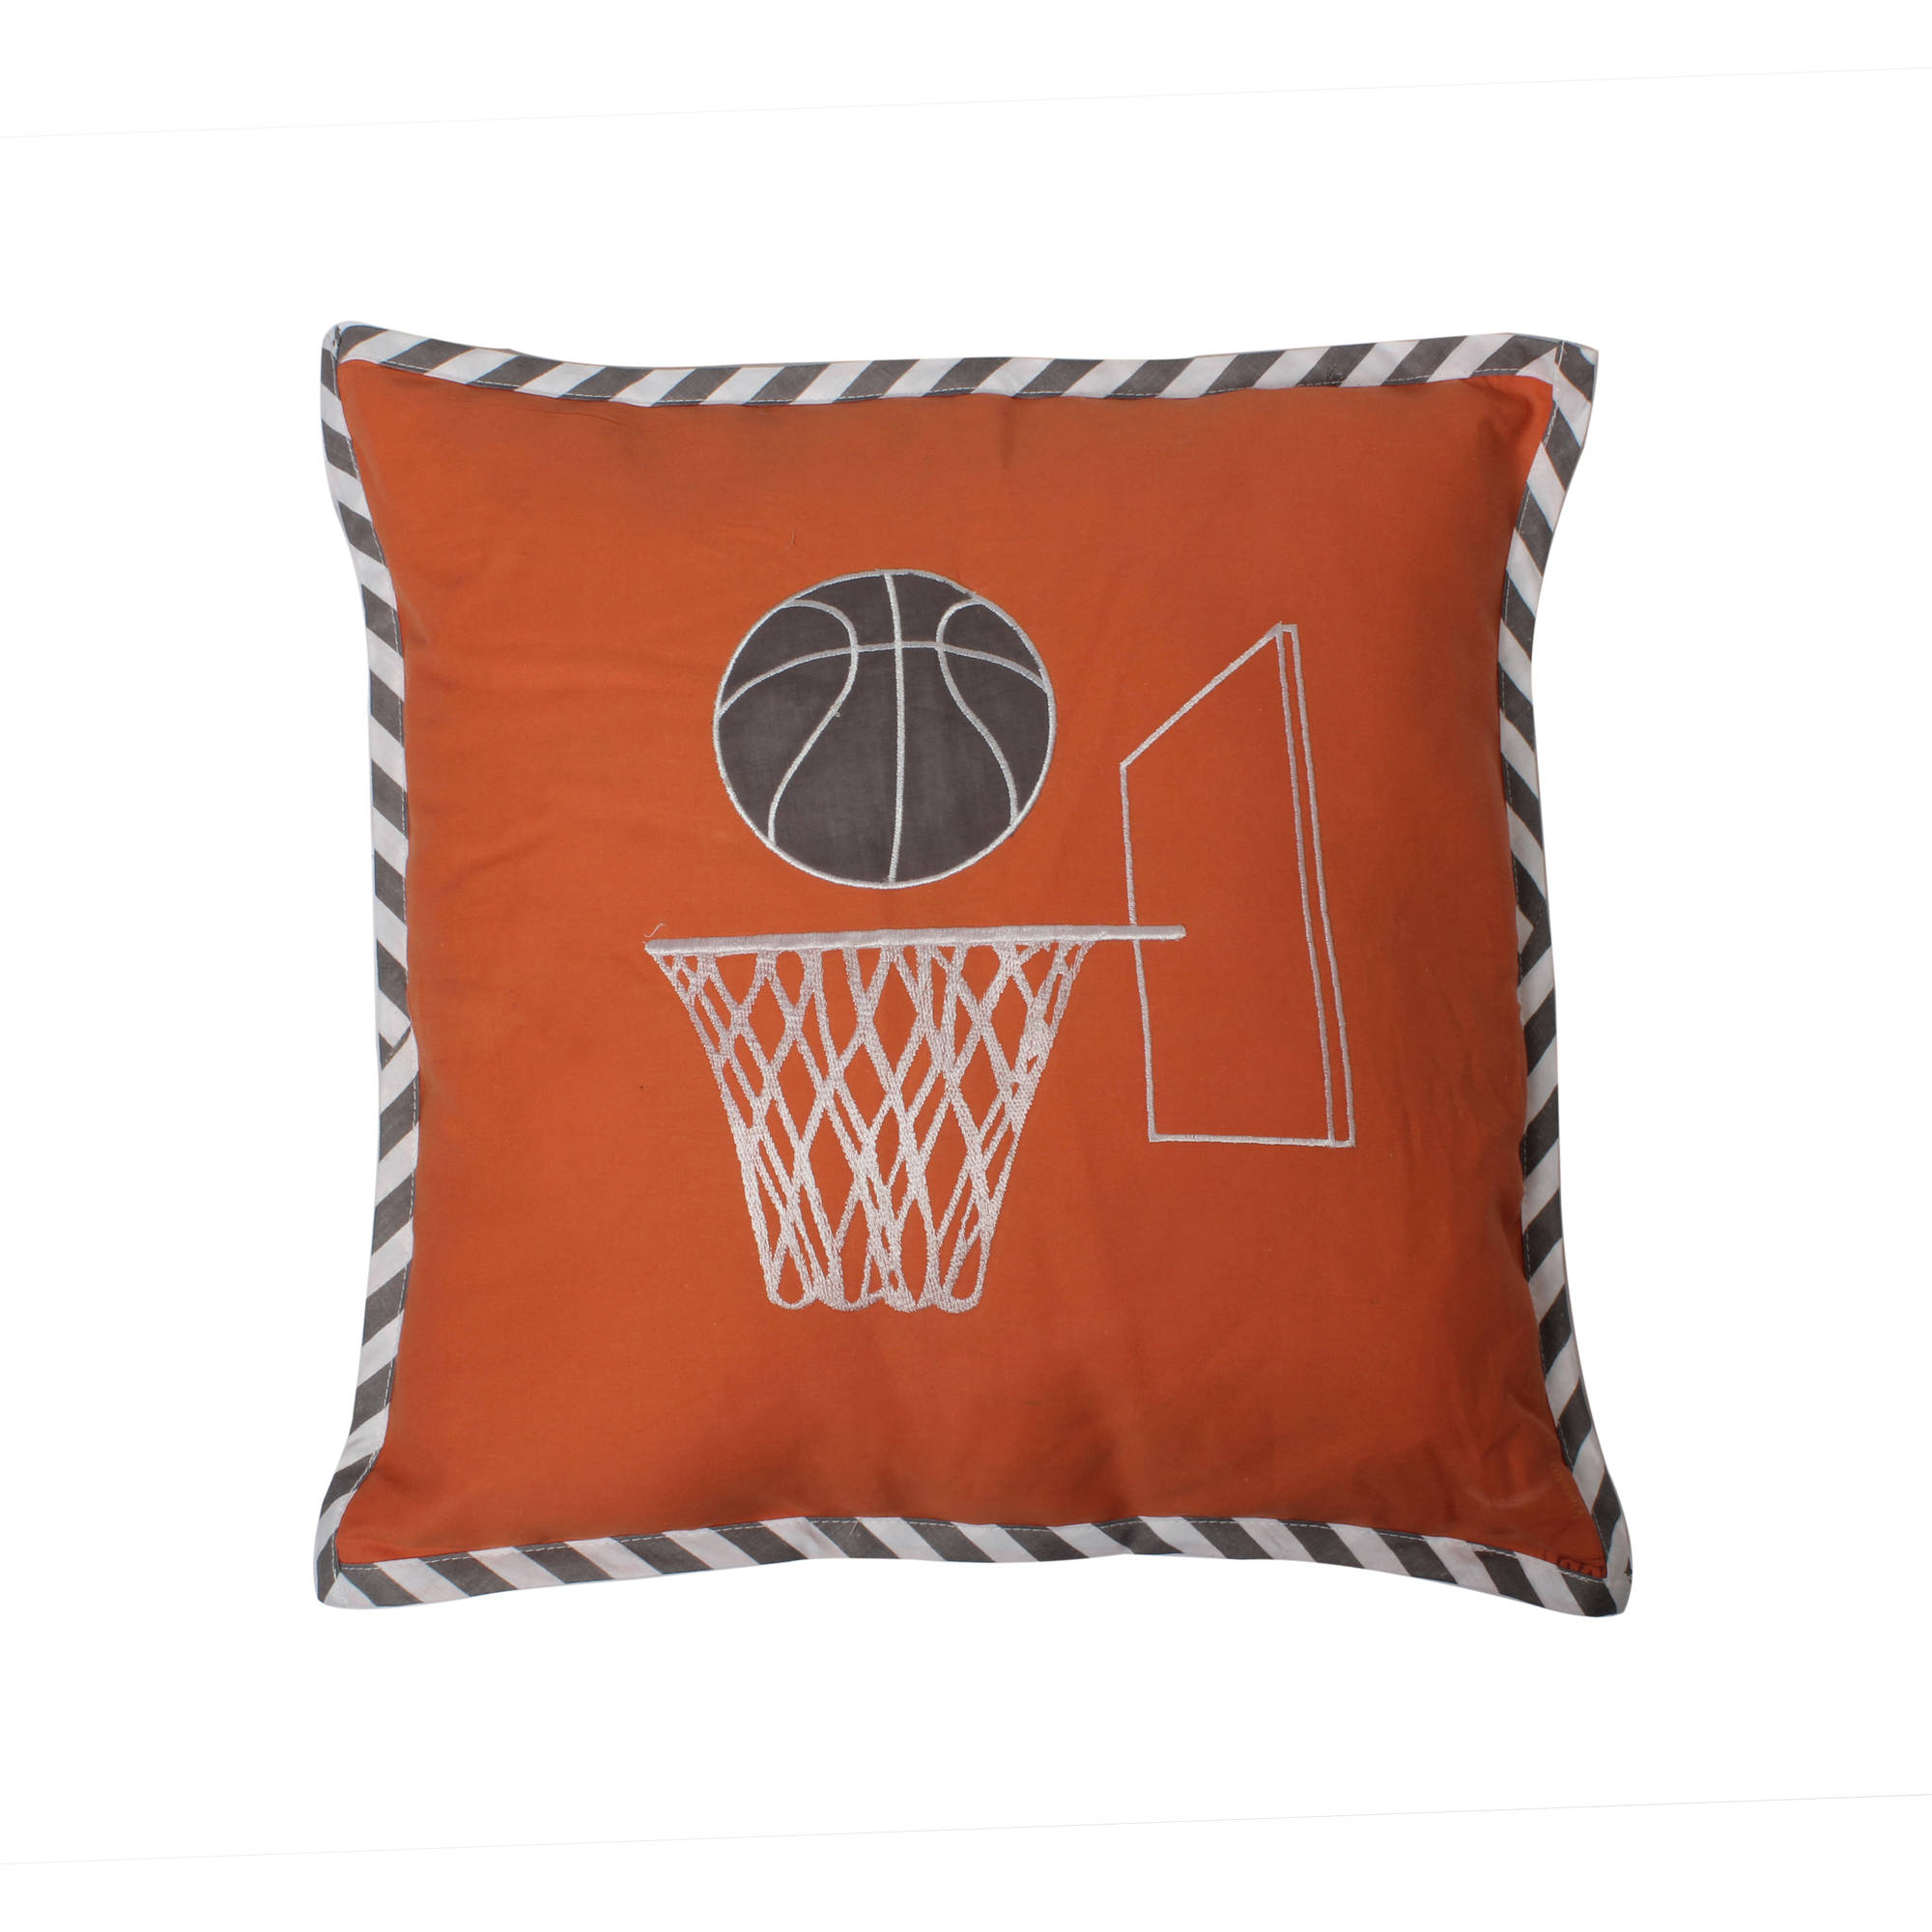 Bacati - Basketball Orange/Grey Muslin Dec Pillow 12 x 16 inches with removable 100% Cotton cover and polyfilled pillow insert